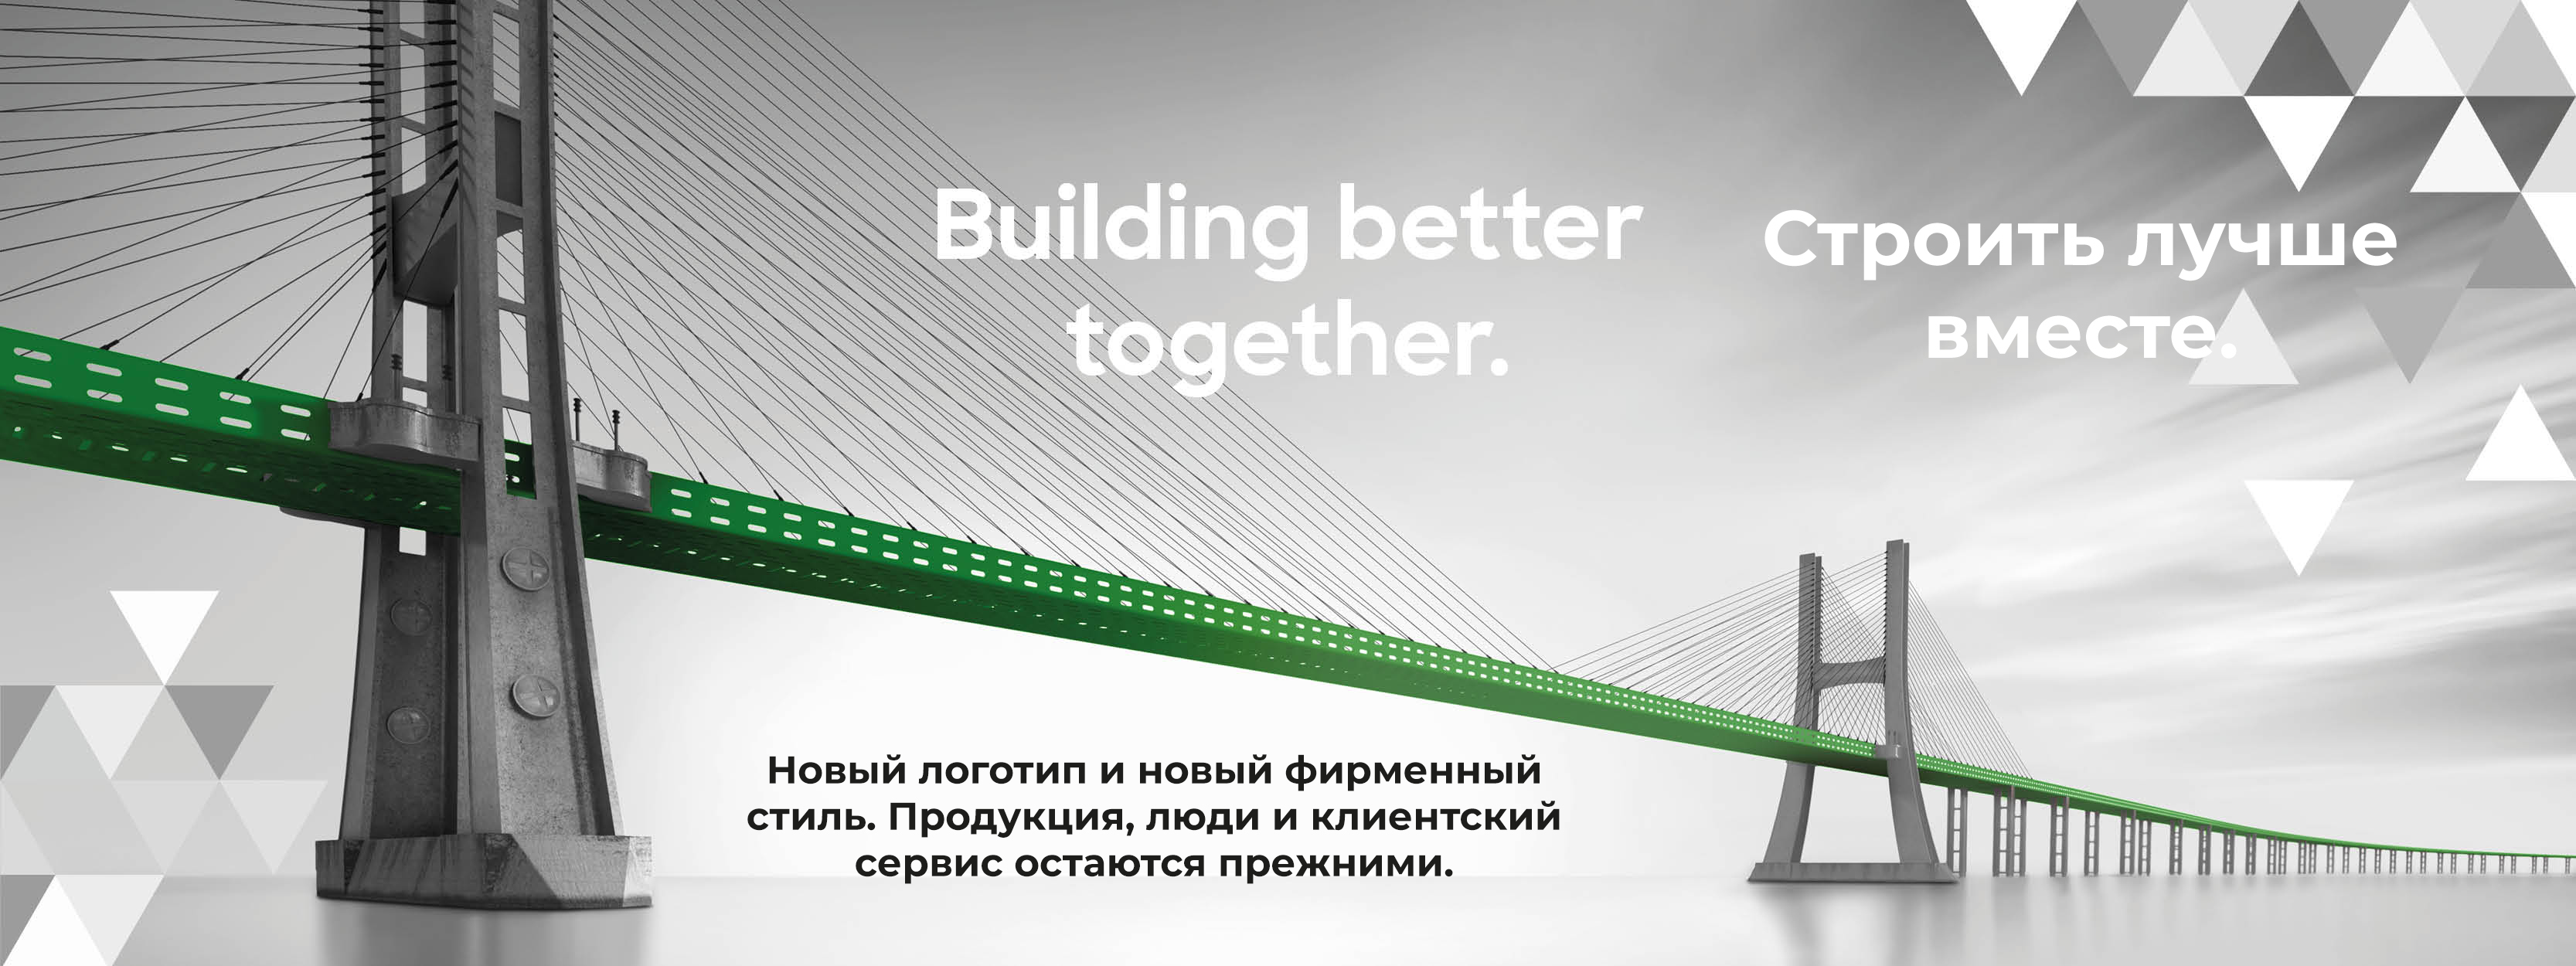 Atkore_Vergokan_bridge_RU